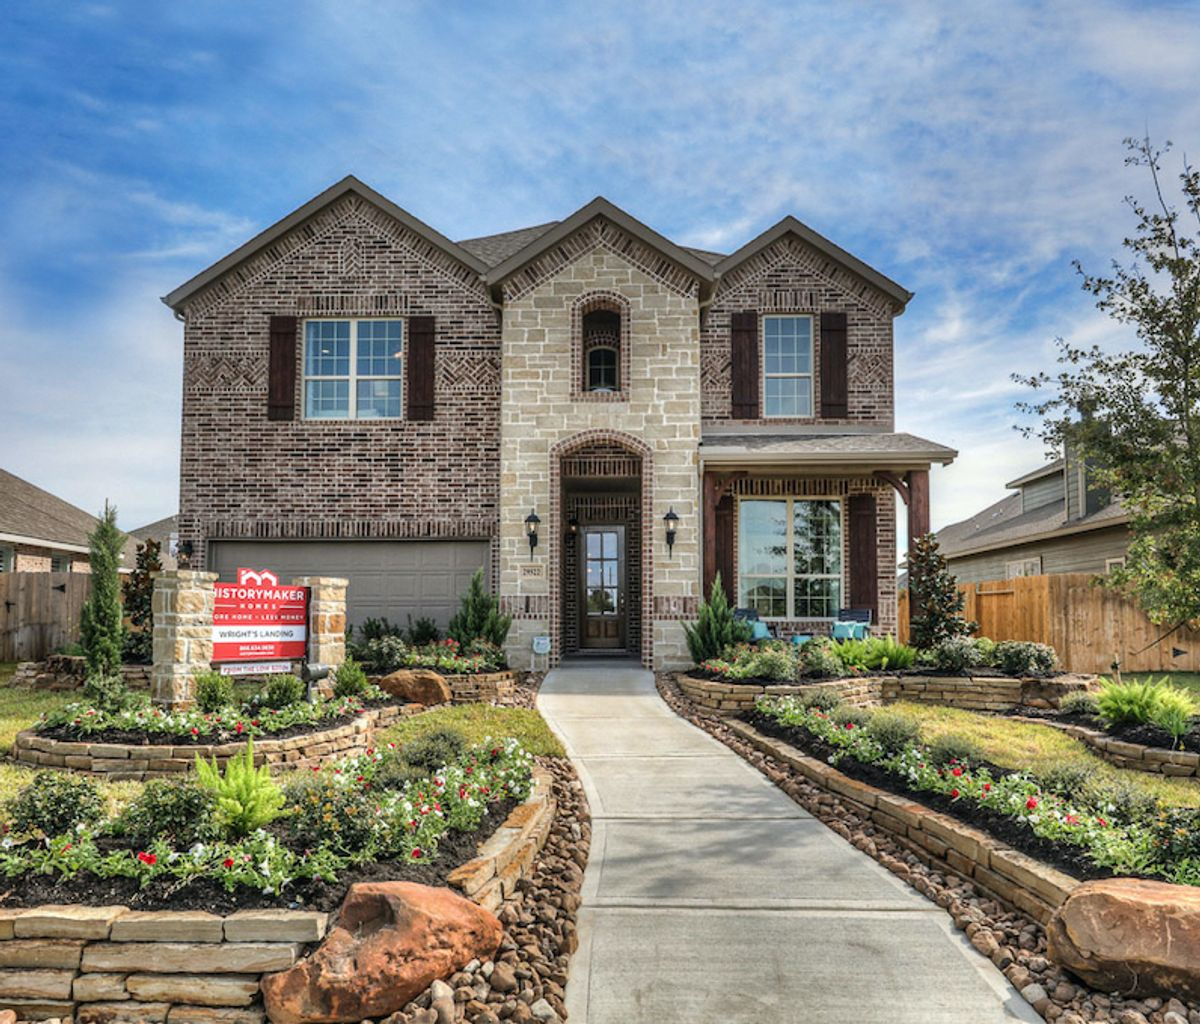 HistoryMaker Homes Opens First Houston Model